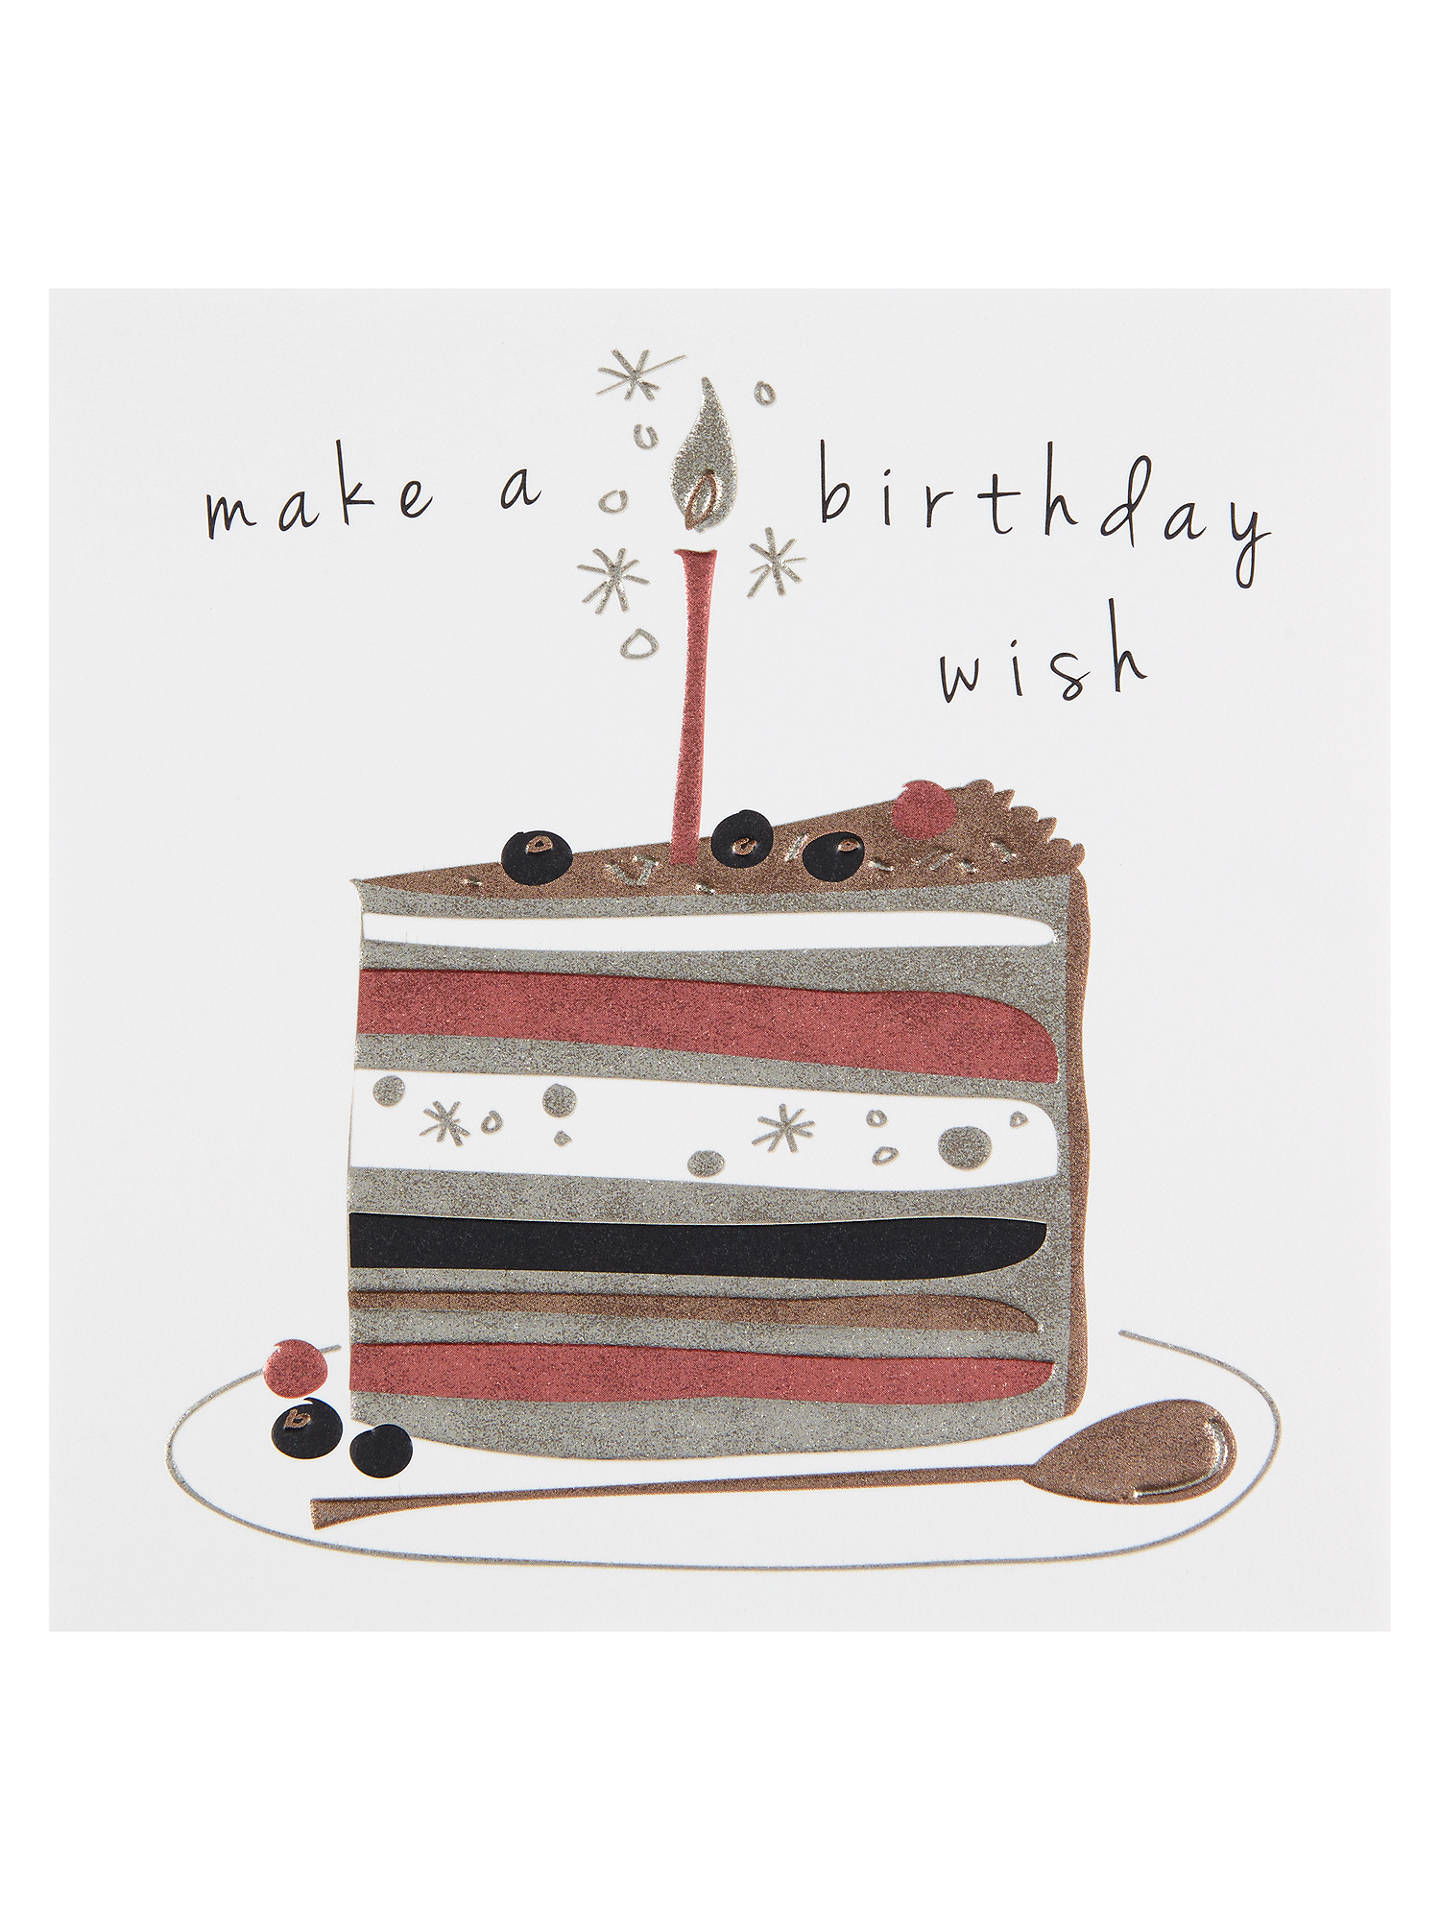 Belly Button Designs Birthday Wish Greeting Card At John Lewis